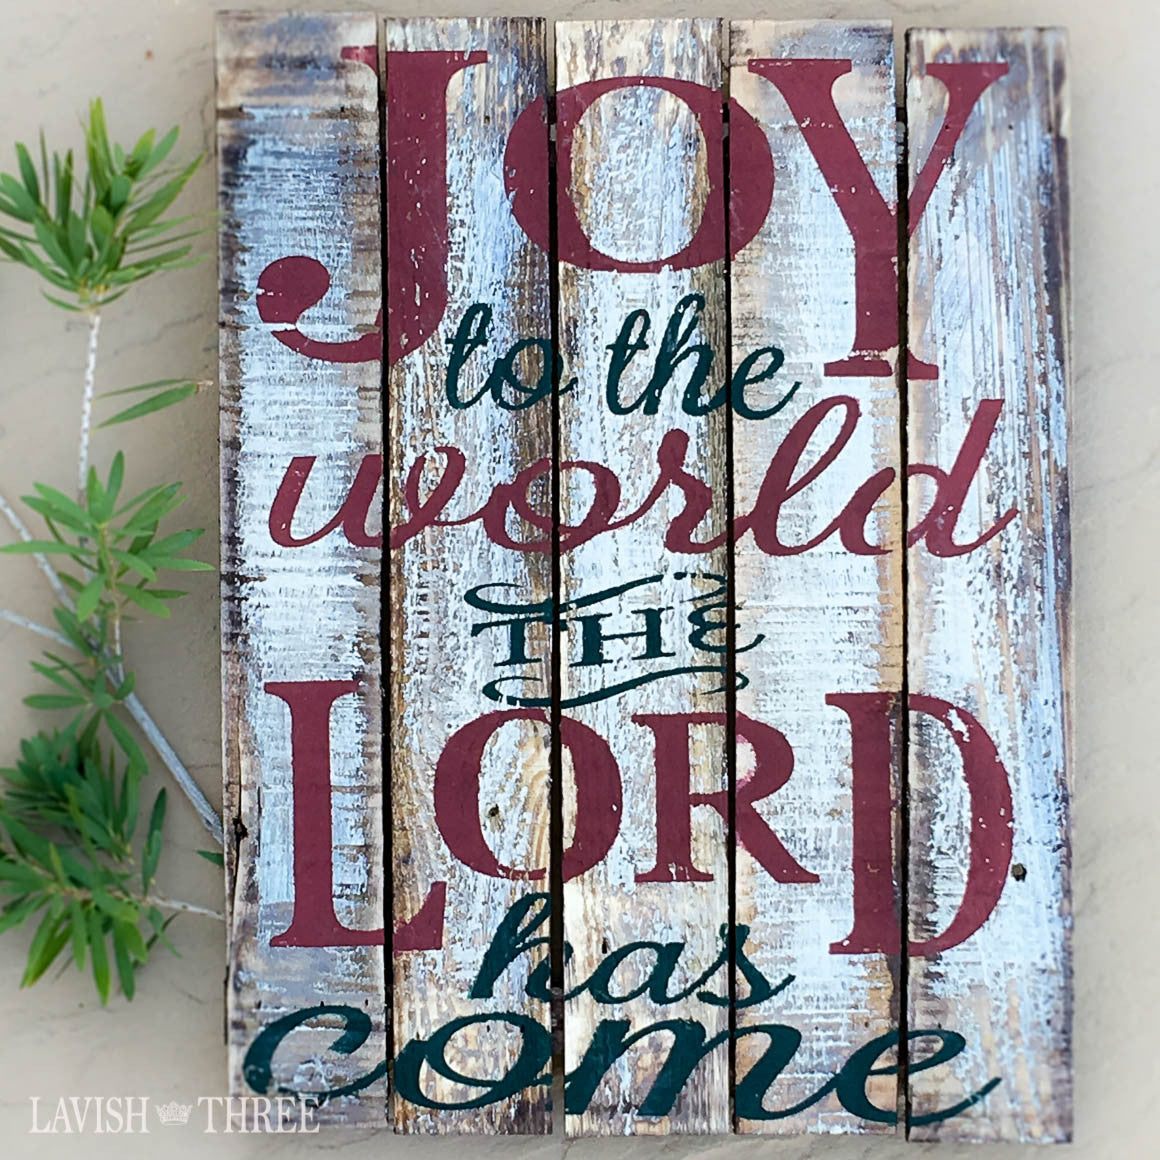 Joy to the world the Lord has come painted wood wall art sign